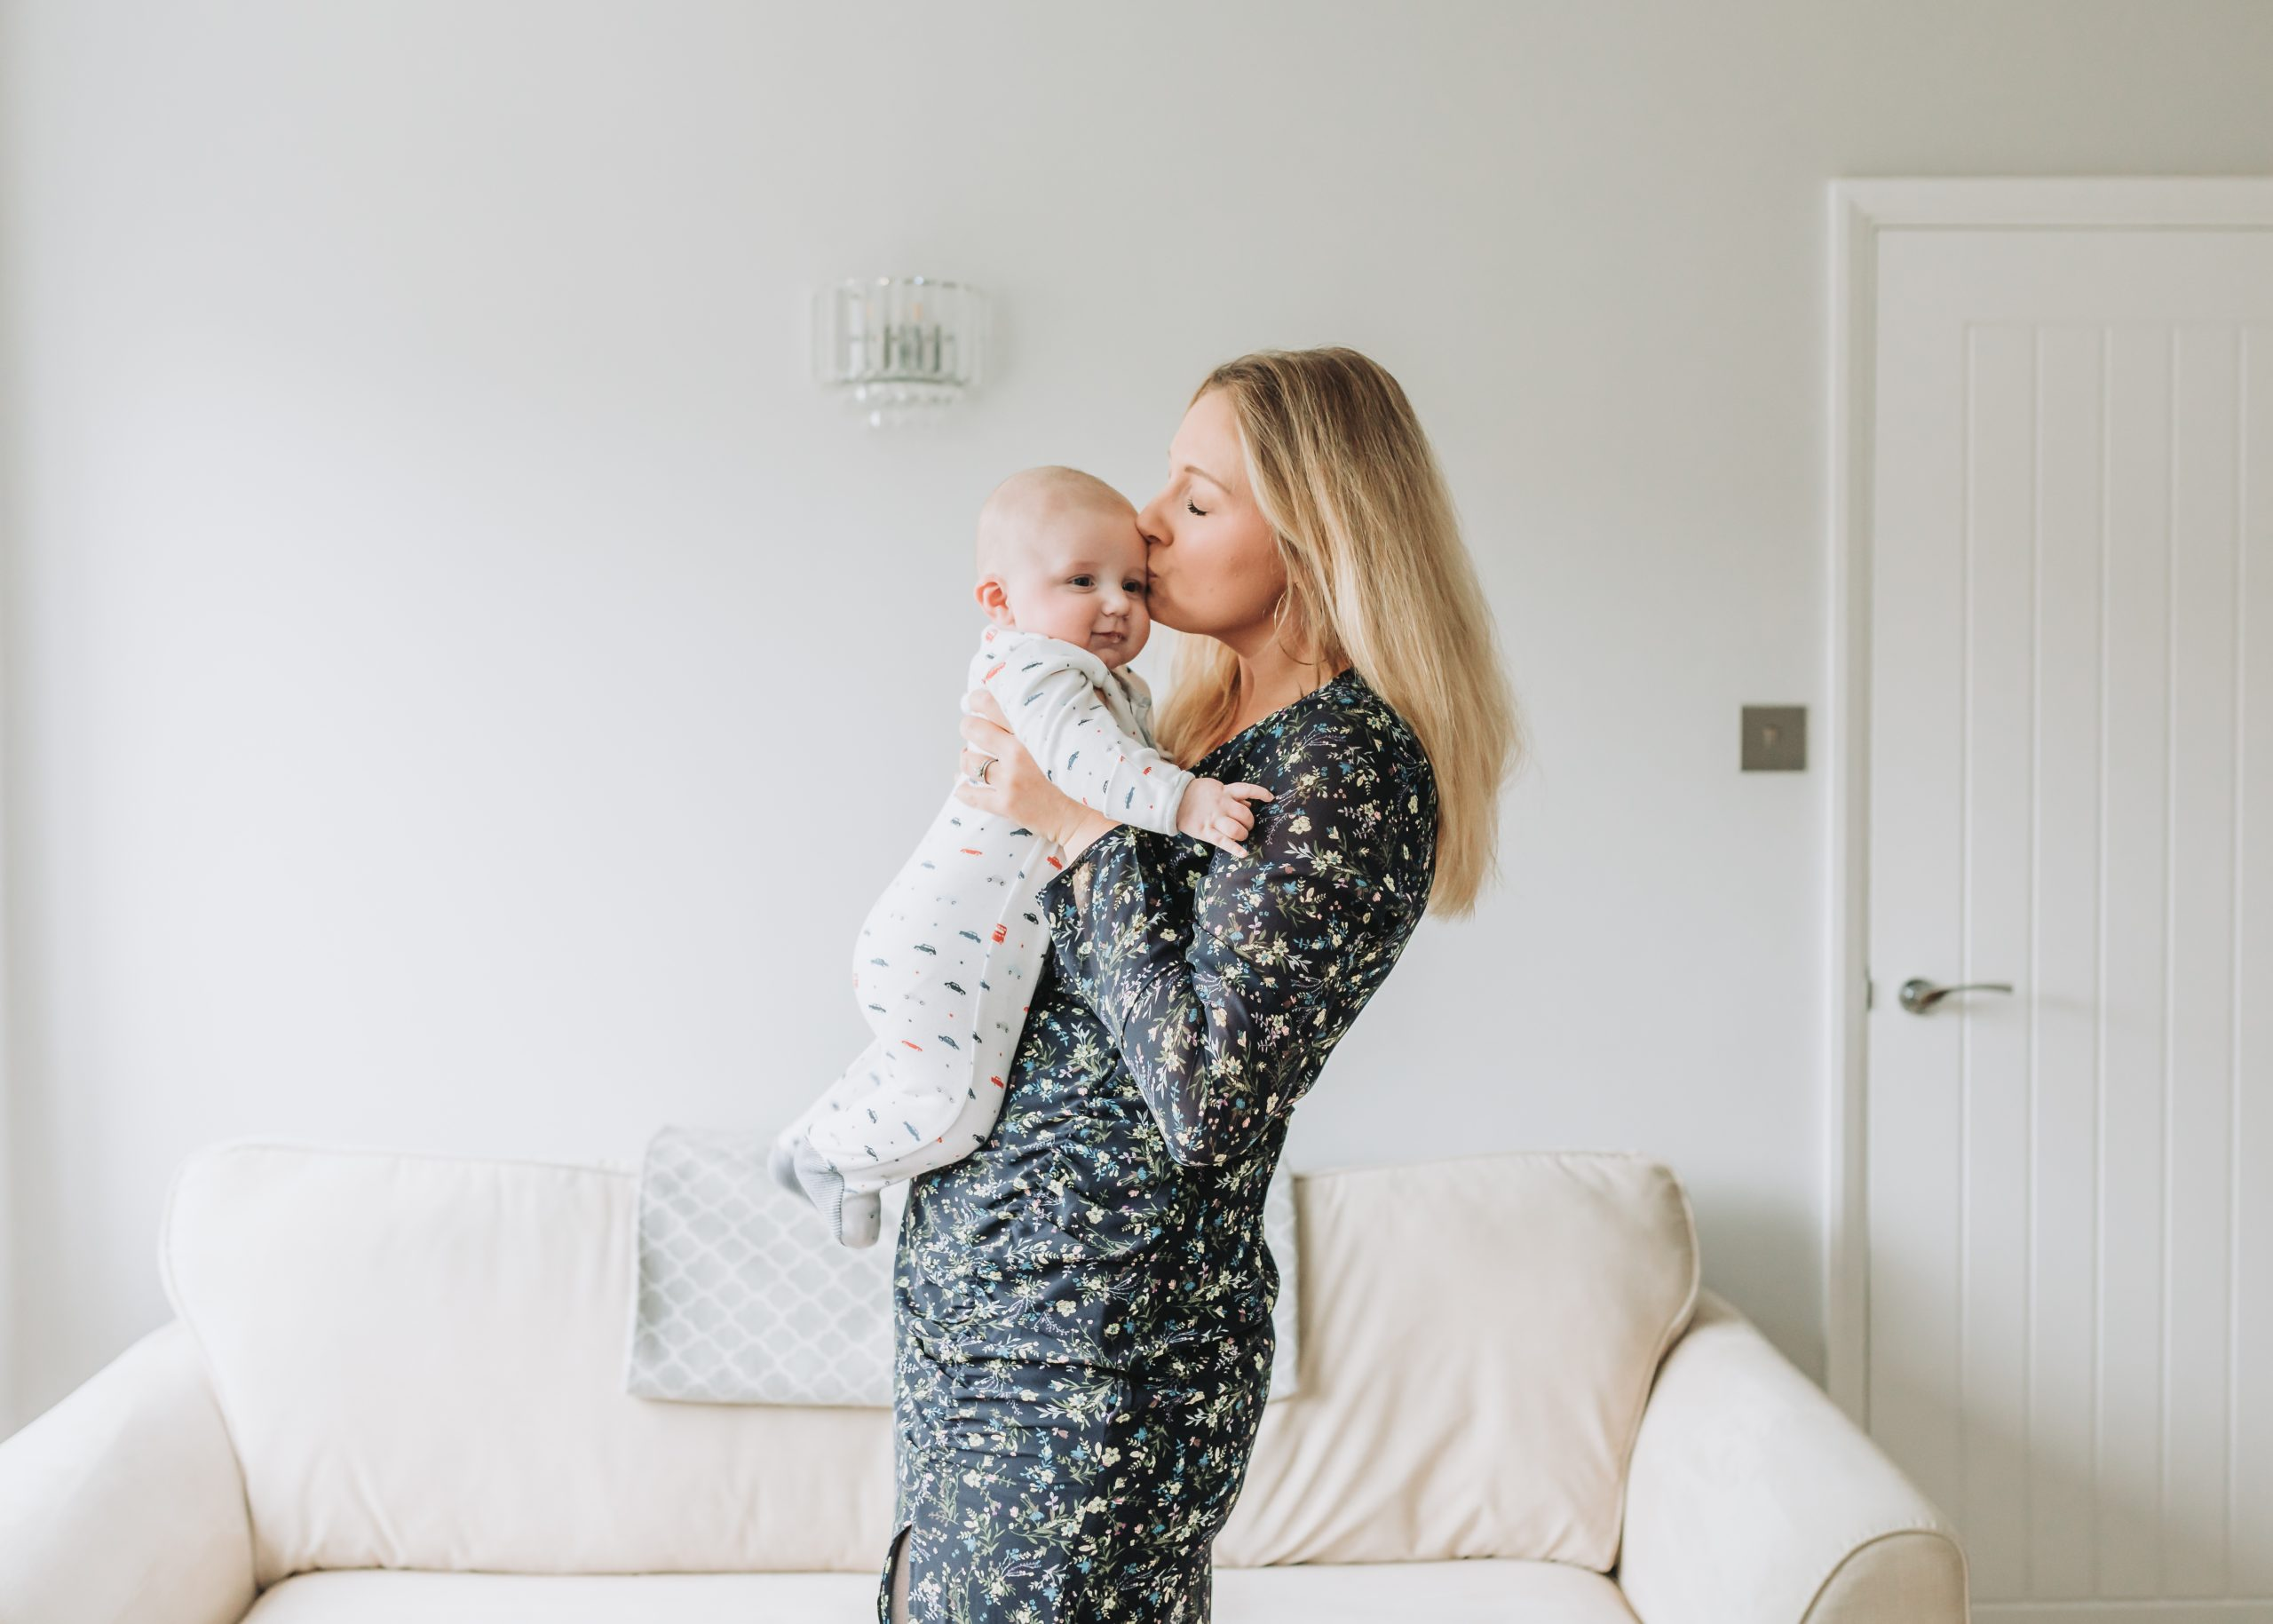 Mother kissing her new baby at a photo shoot at home, photographed by Stevenage family photographer Alannah Hebbert